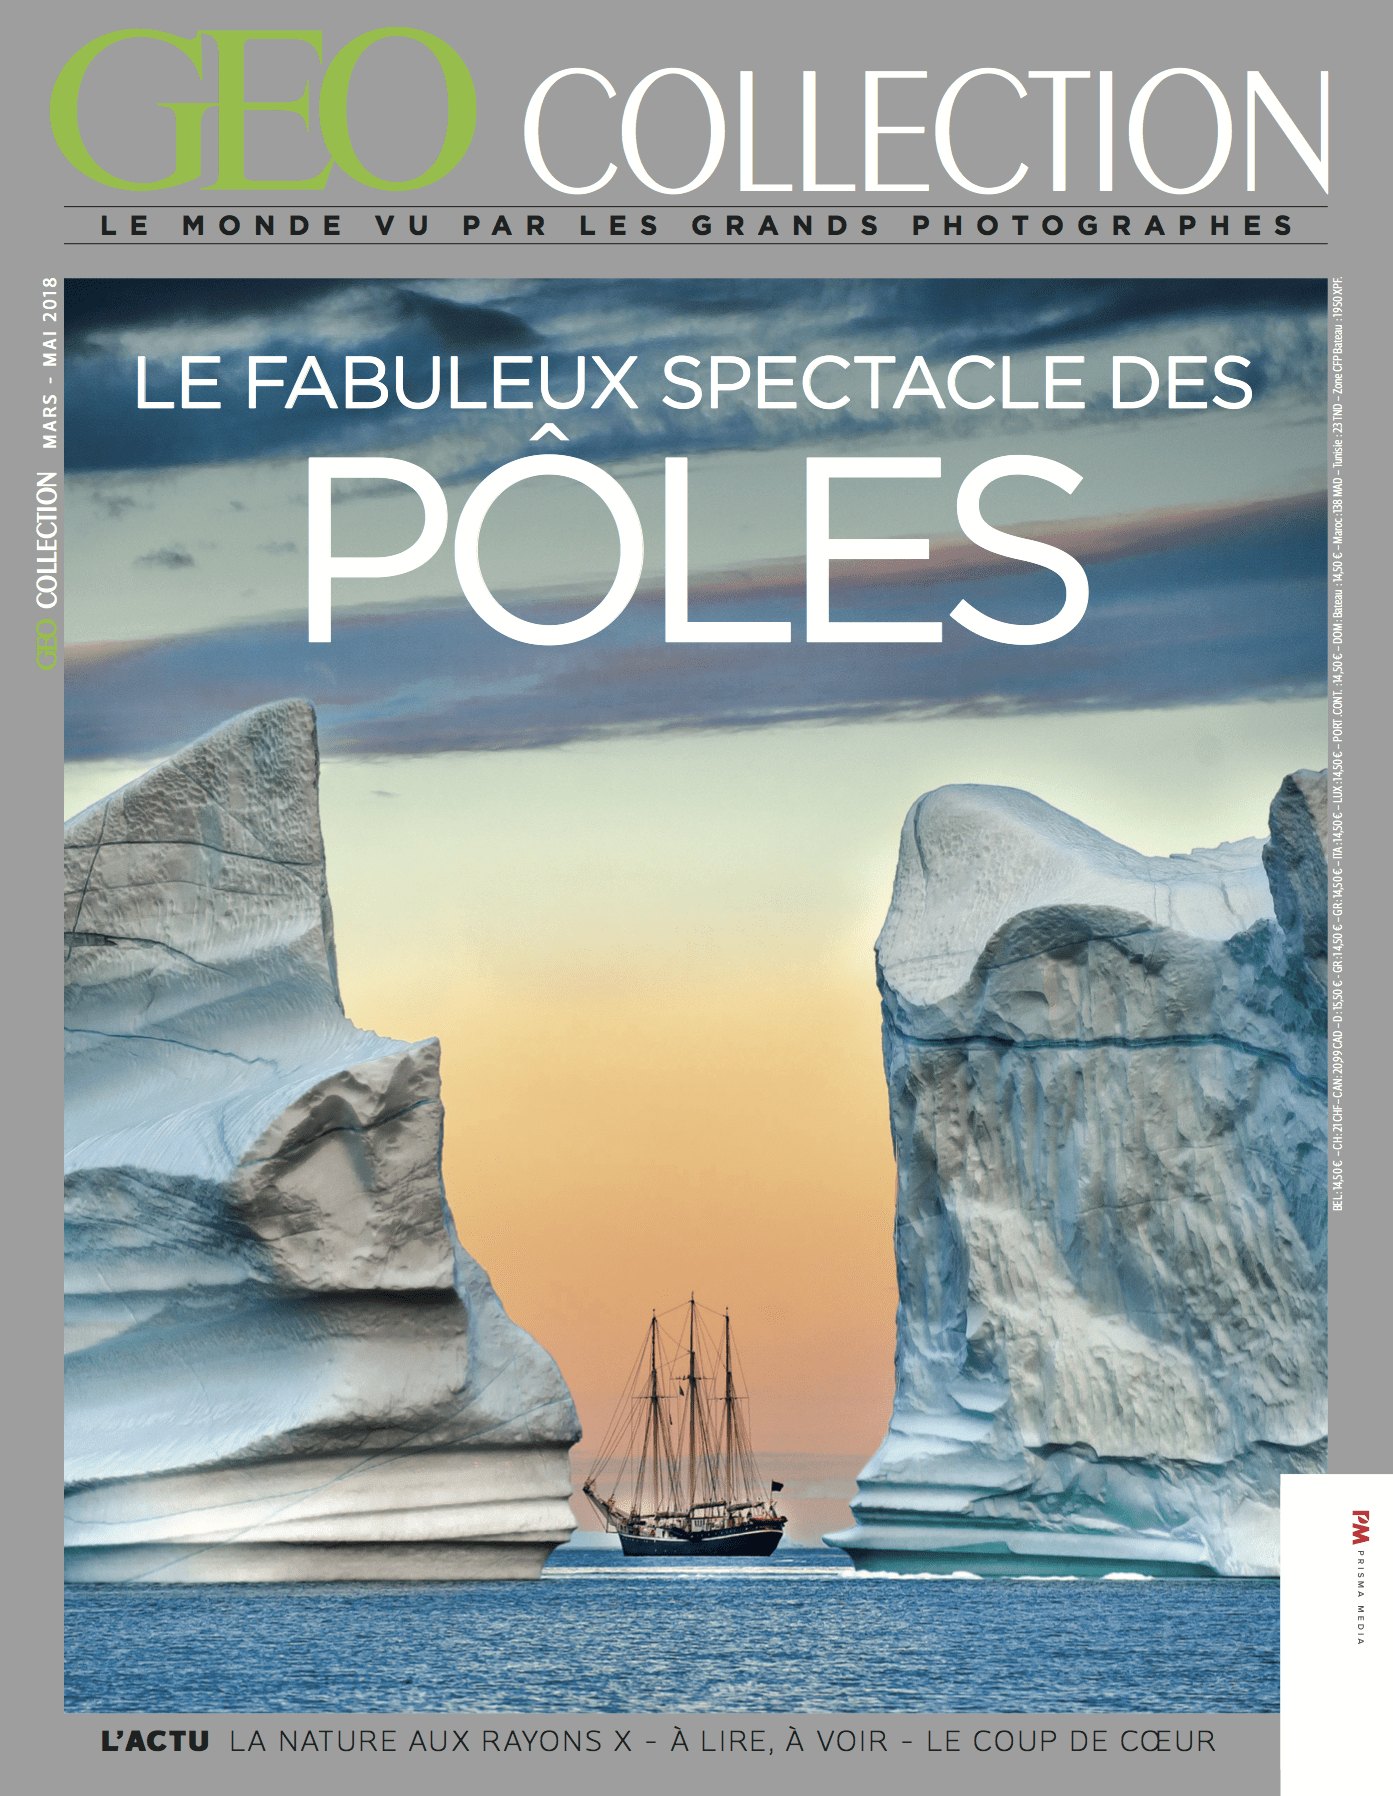 GEO COLLECTION N°5 _ Fabuleux spectacles des poles